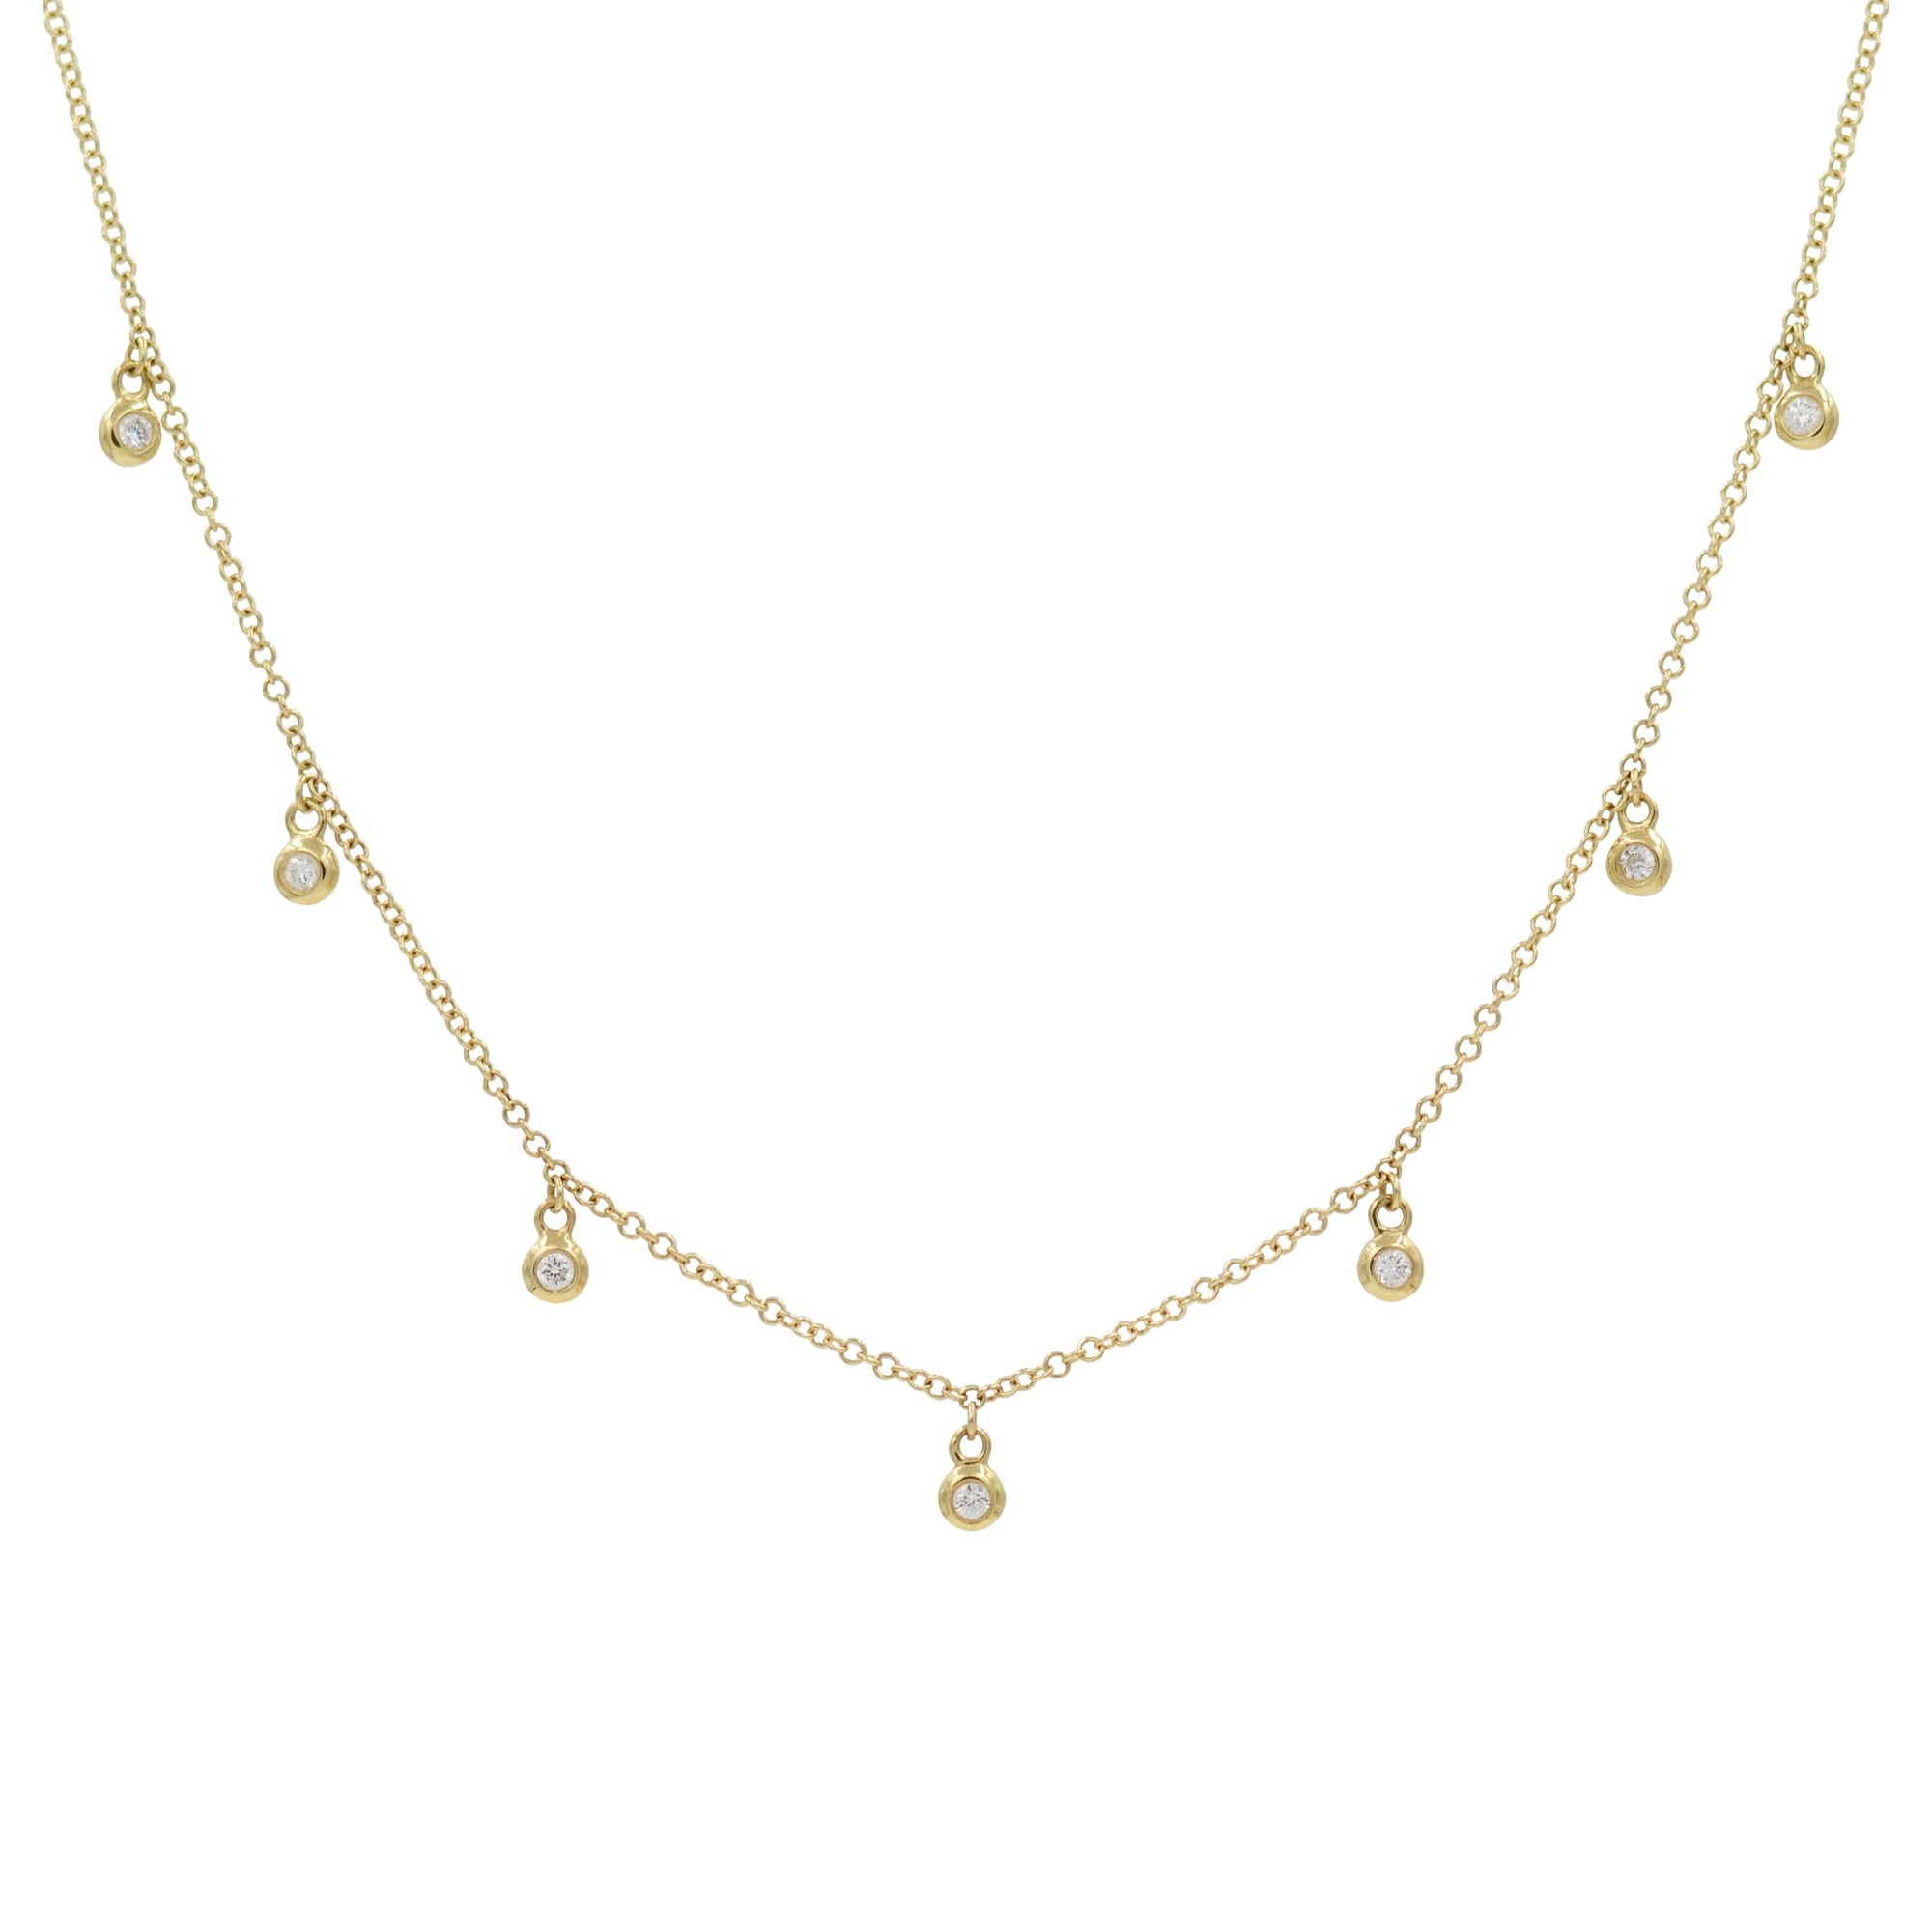 Orbits Diamond Drop Choker Necklace in 14k Gold